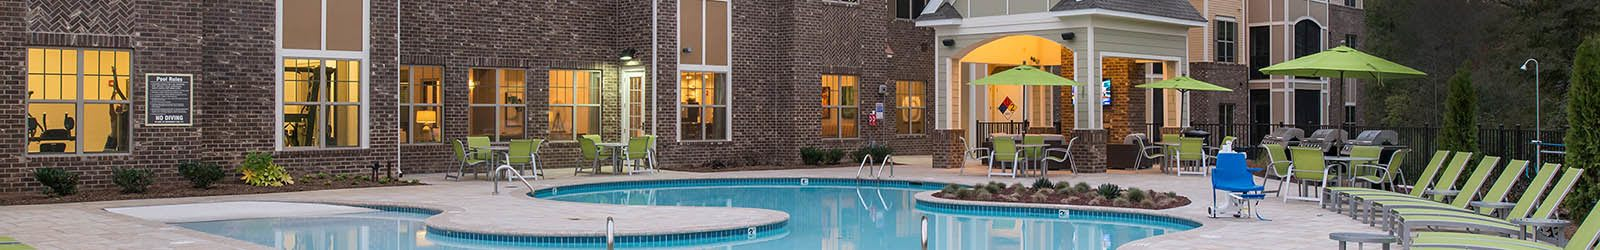 Huntersville, NC apartments for rent